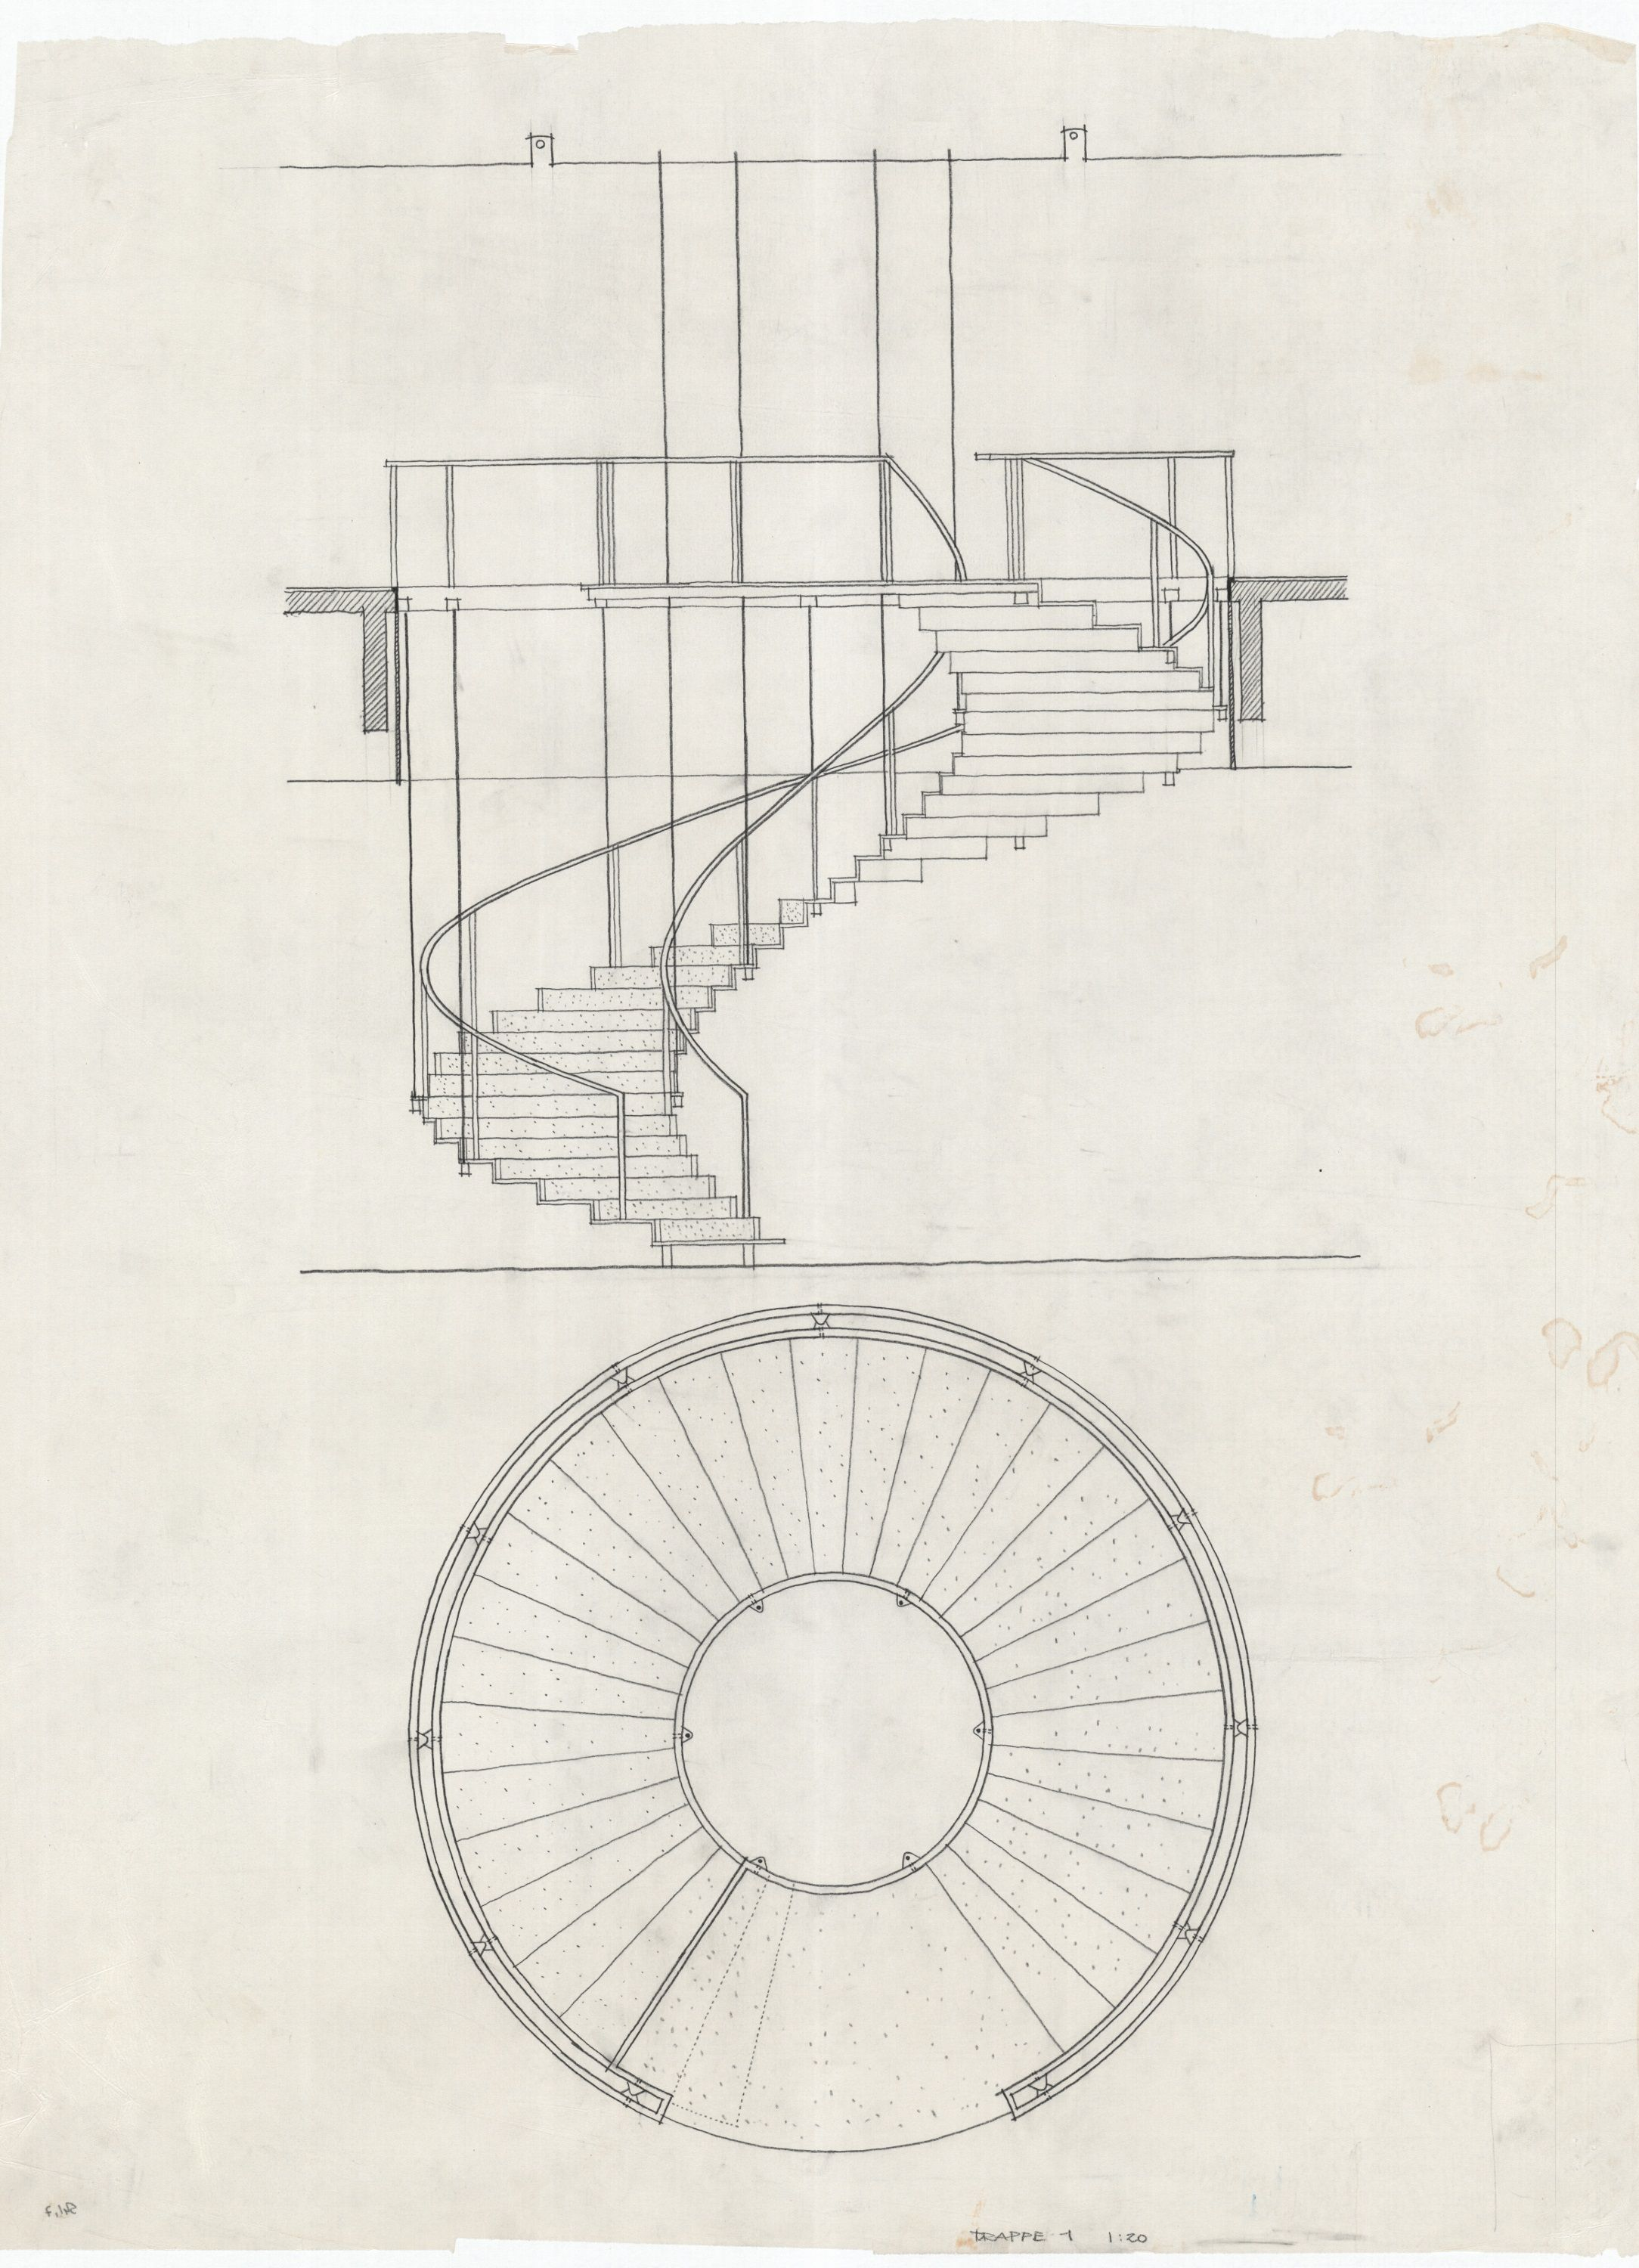 Arne Jacobsen, Stairs SAS Royal Hotel, 1955 59 Stair Drawing, Plan Drawing